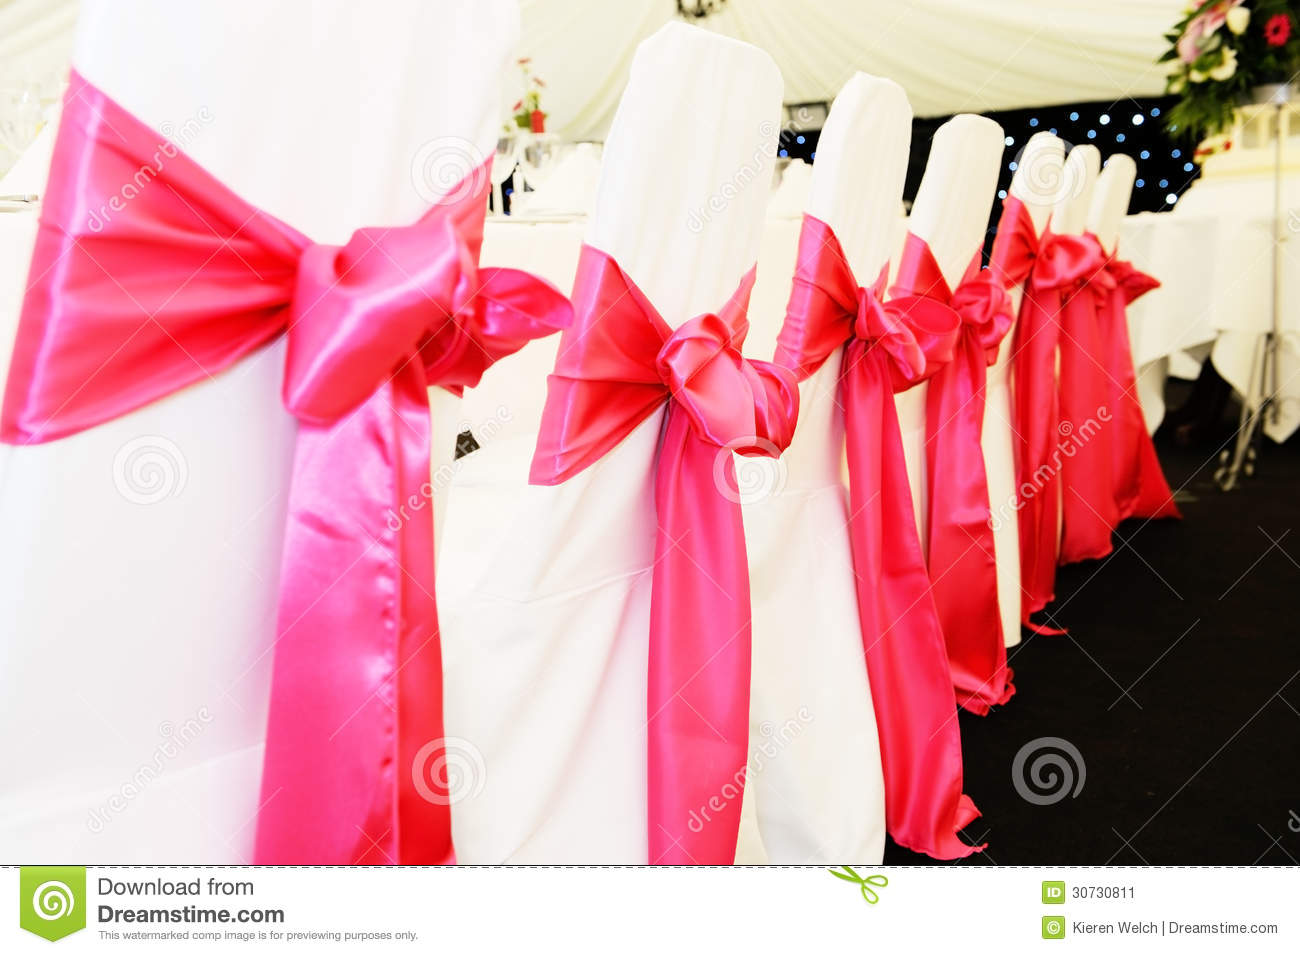 wedding chair covers stock image image of cloth pink 30730811